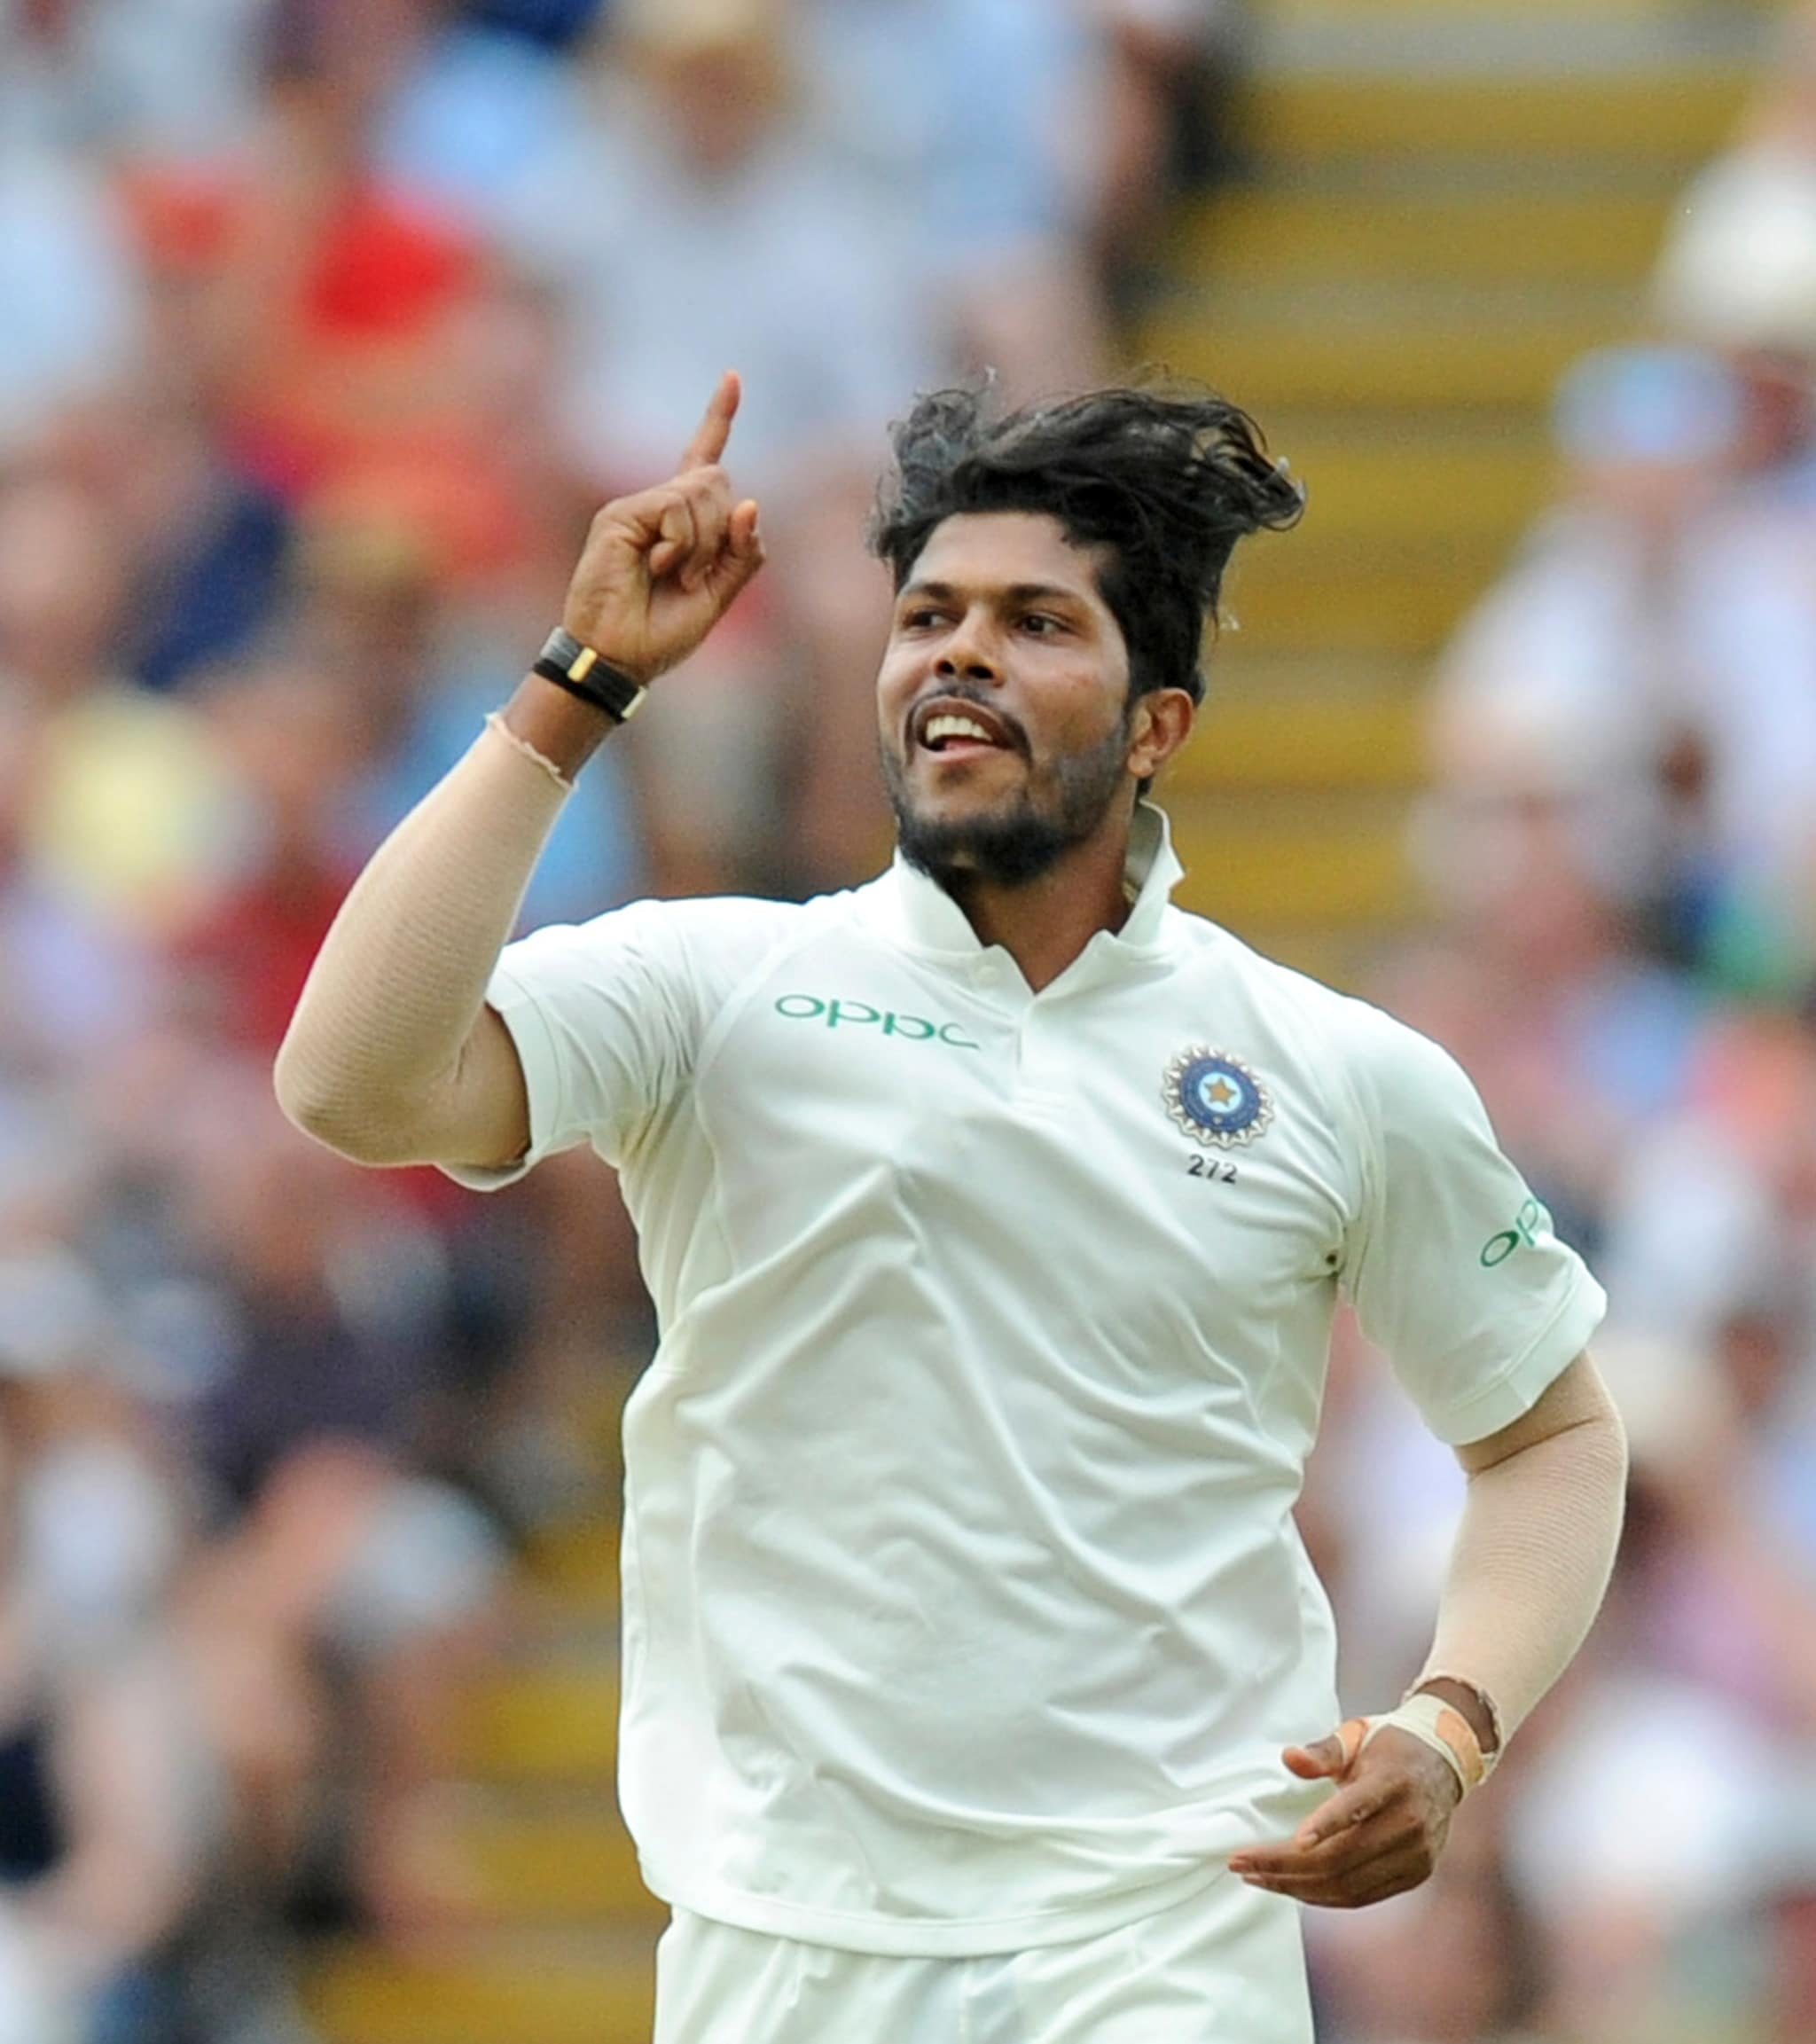 Umesh Yadav celebrates the dismissal of England's Adil Rashid during the third day of the first test cricket match between England and India at Edgbaston in Birmingham, England, Friday, Aug. 3, 2018. (AP Photo/Rui Vieira)